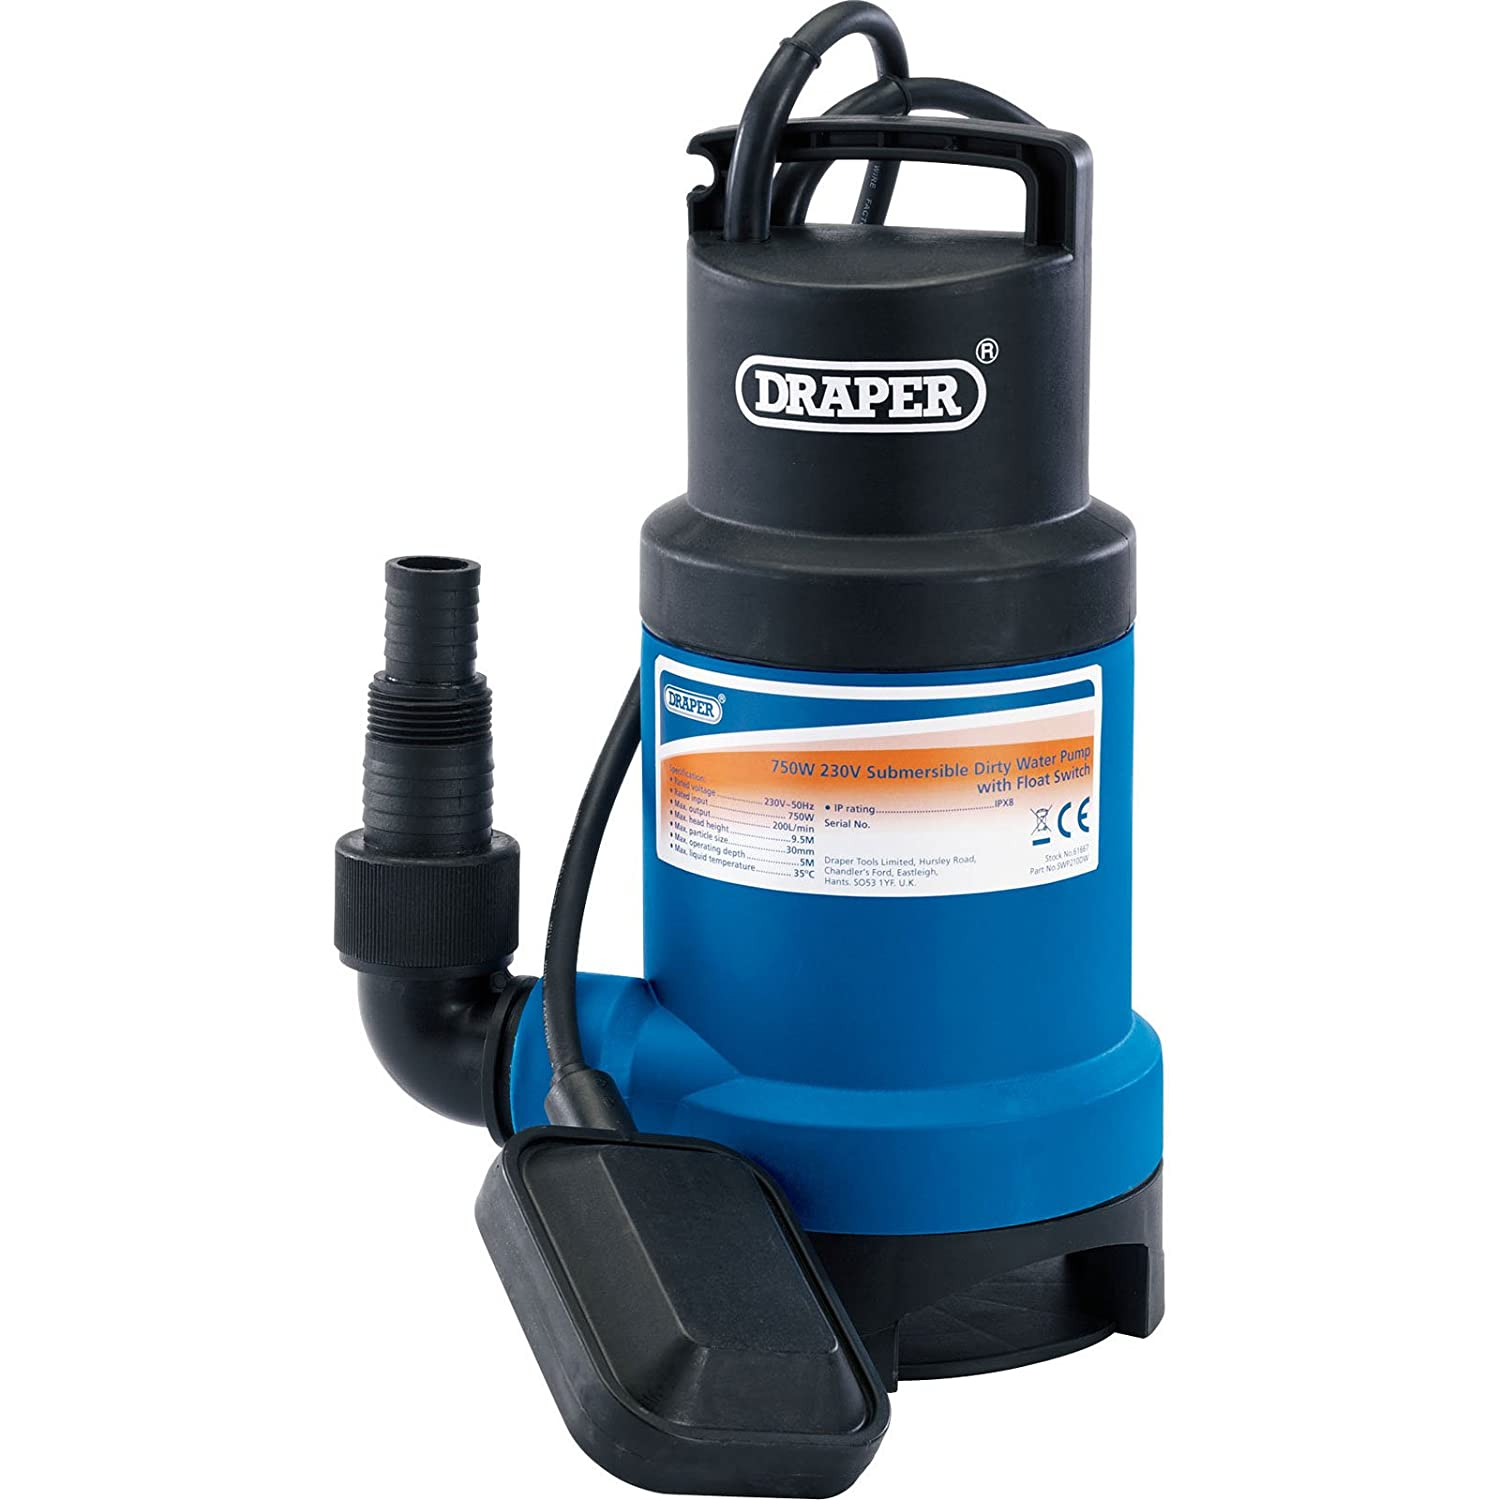 Draper 61668 Submersible Water Pump with Float Switch - Black/Blue 350W 108L/min SWP112 DRA61668 LAMP Power Tools TORPEDO Workshop Tools Other Workshop Tools